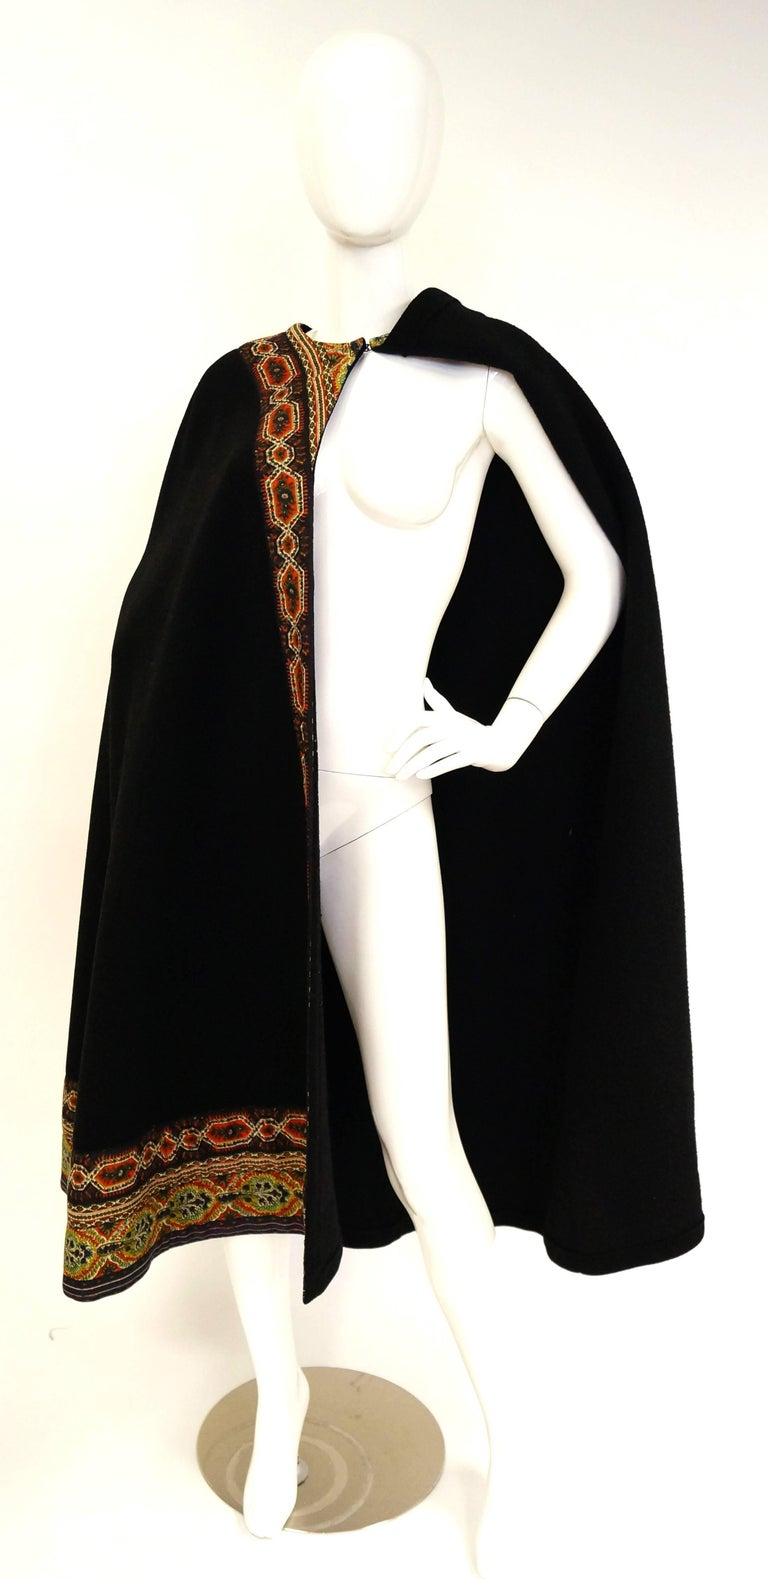 This mid century calf - length wool cloak by Oscar de La Renta is an absolute delight! The cloak is made of soft, thick black wool, and features a bright and colorful bohemian trim. The floral and geometric trim extends around the collar and down